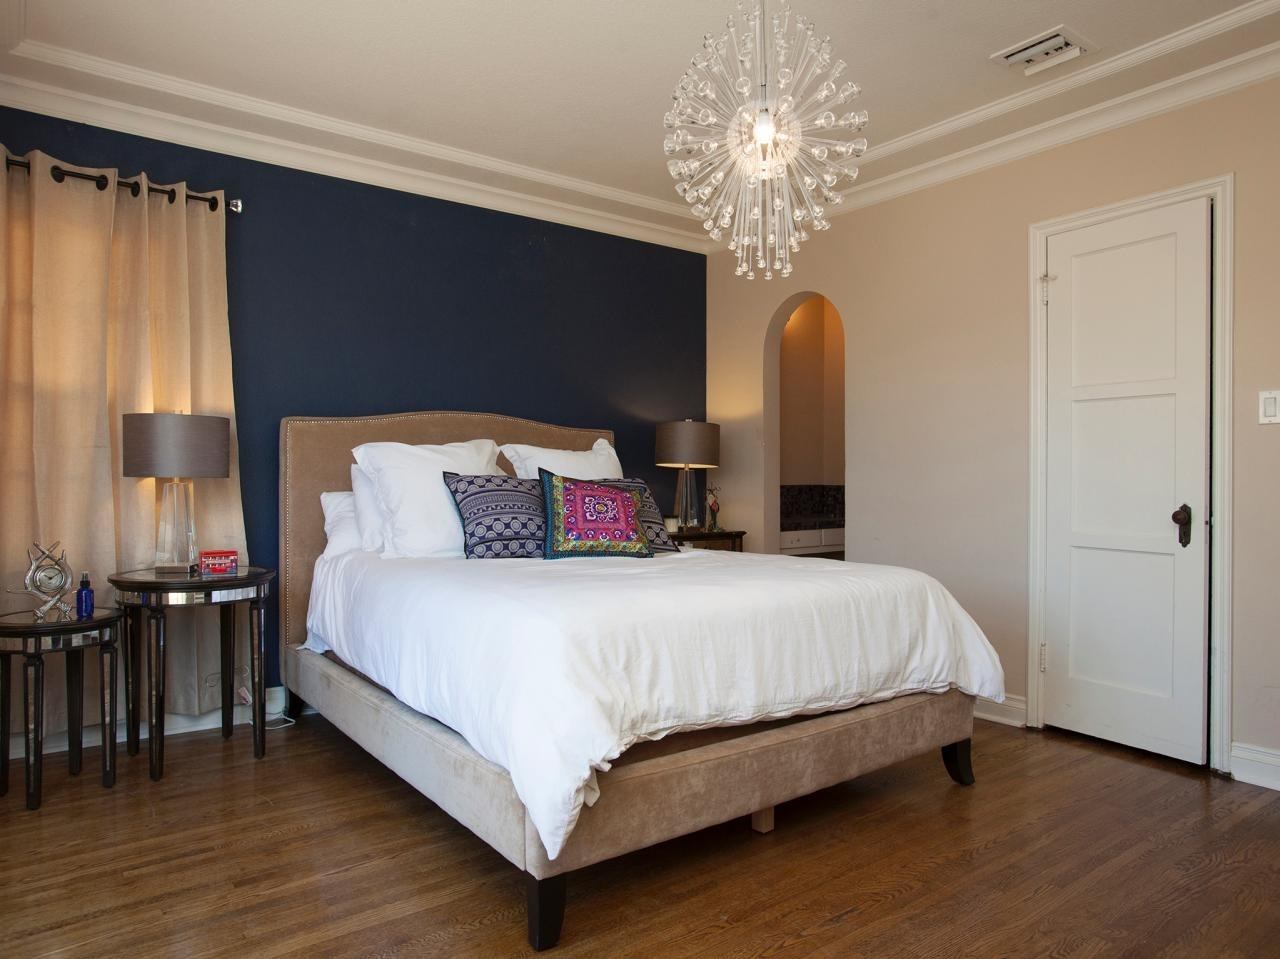 Bedroom | Dark Blue Wall Accent With Burlywood Color Base Inside Most Popular Wall Accents For Tan Room (View 7 of 15)